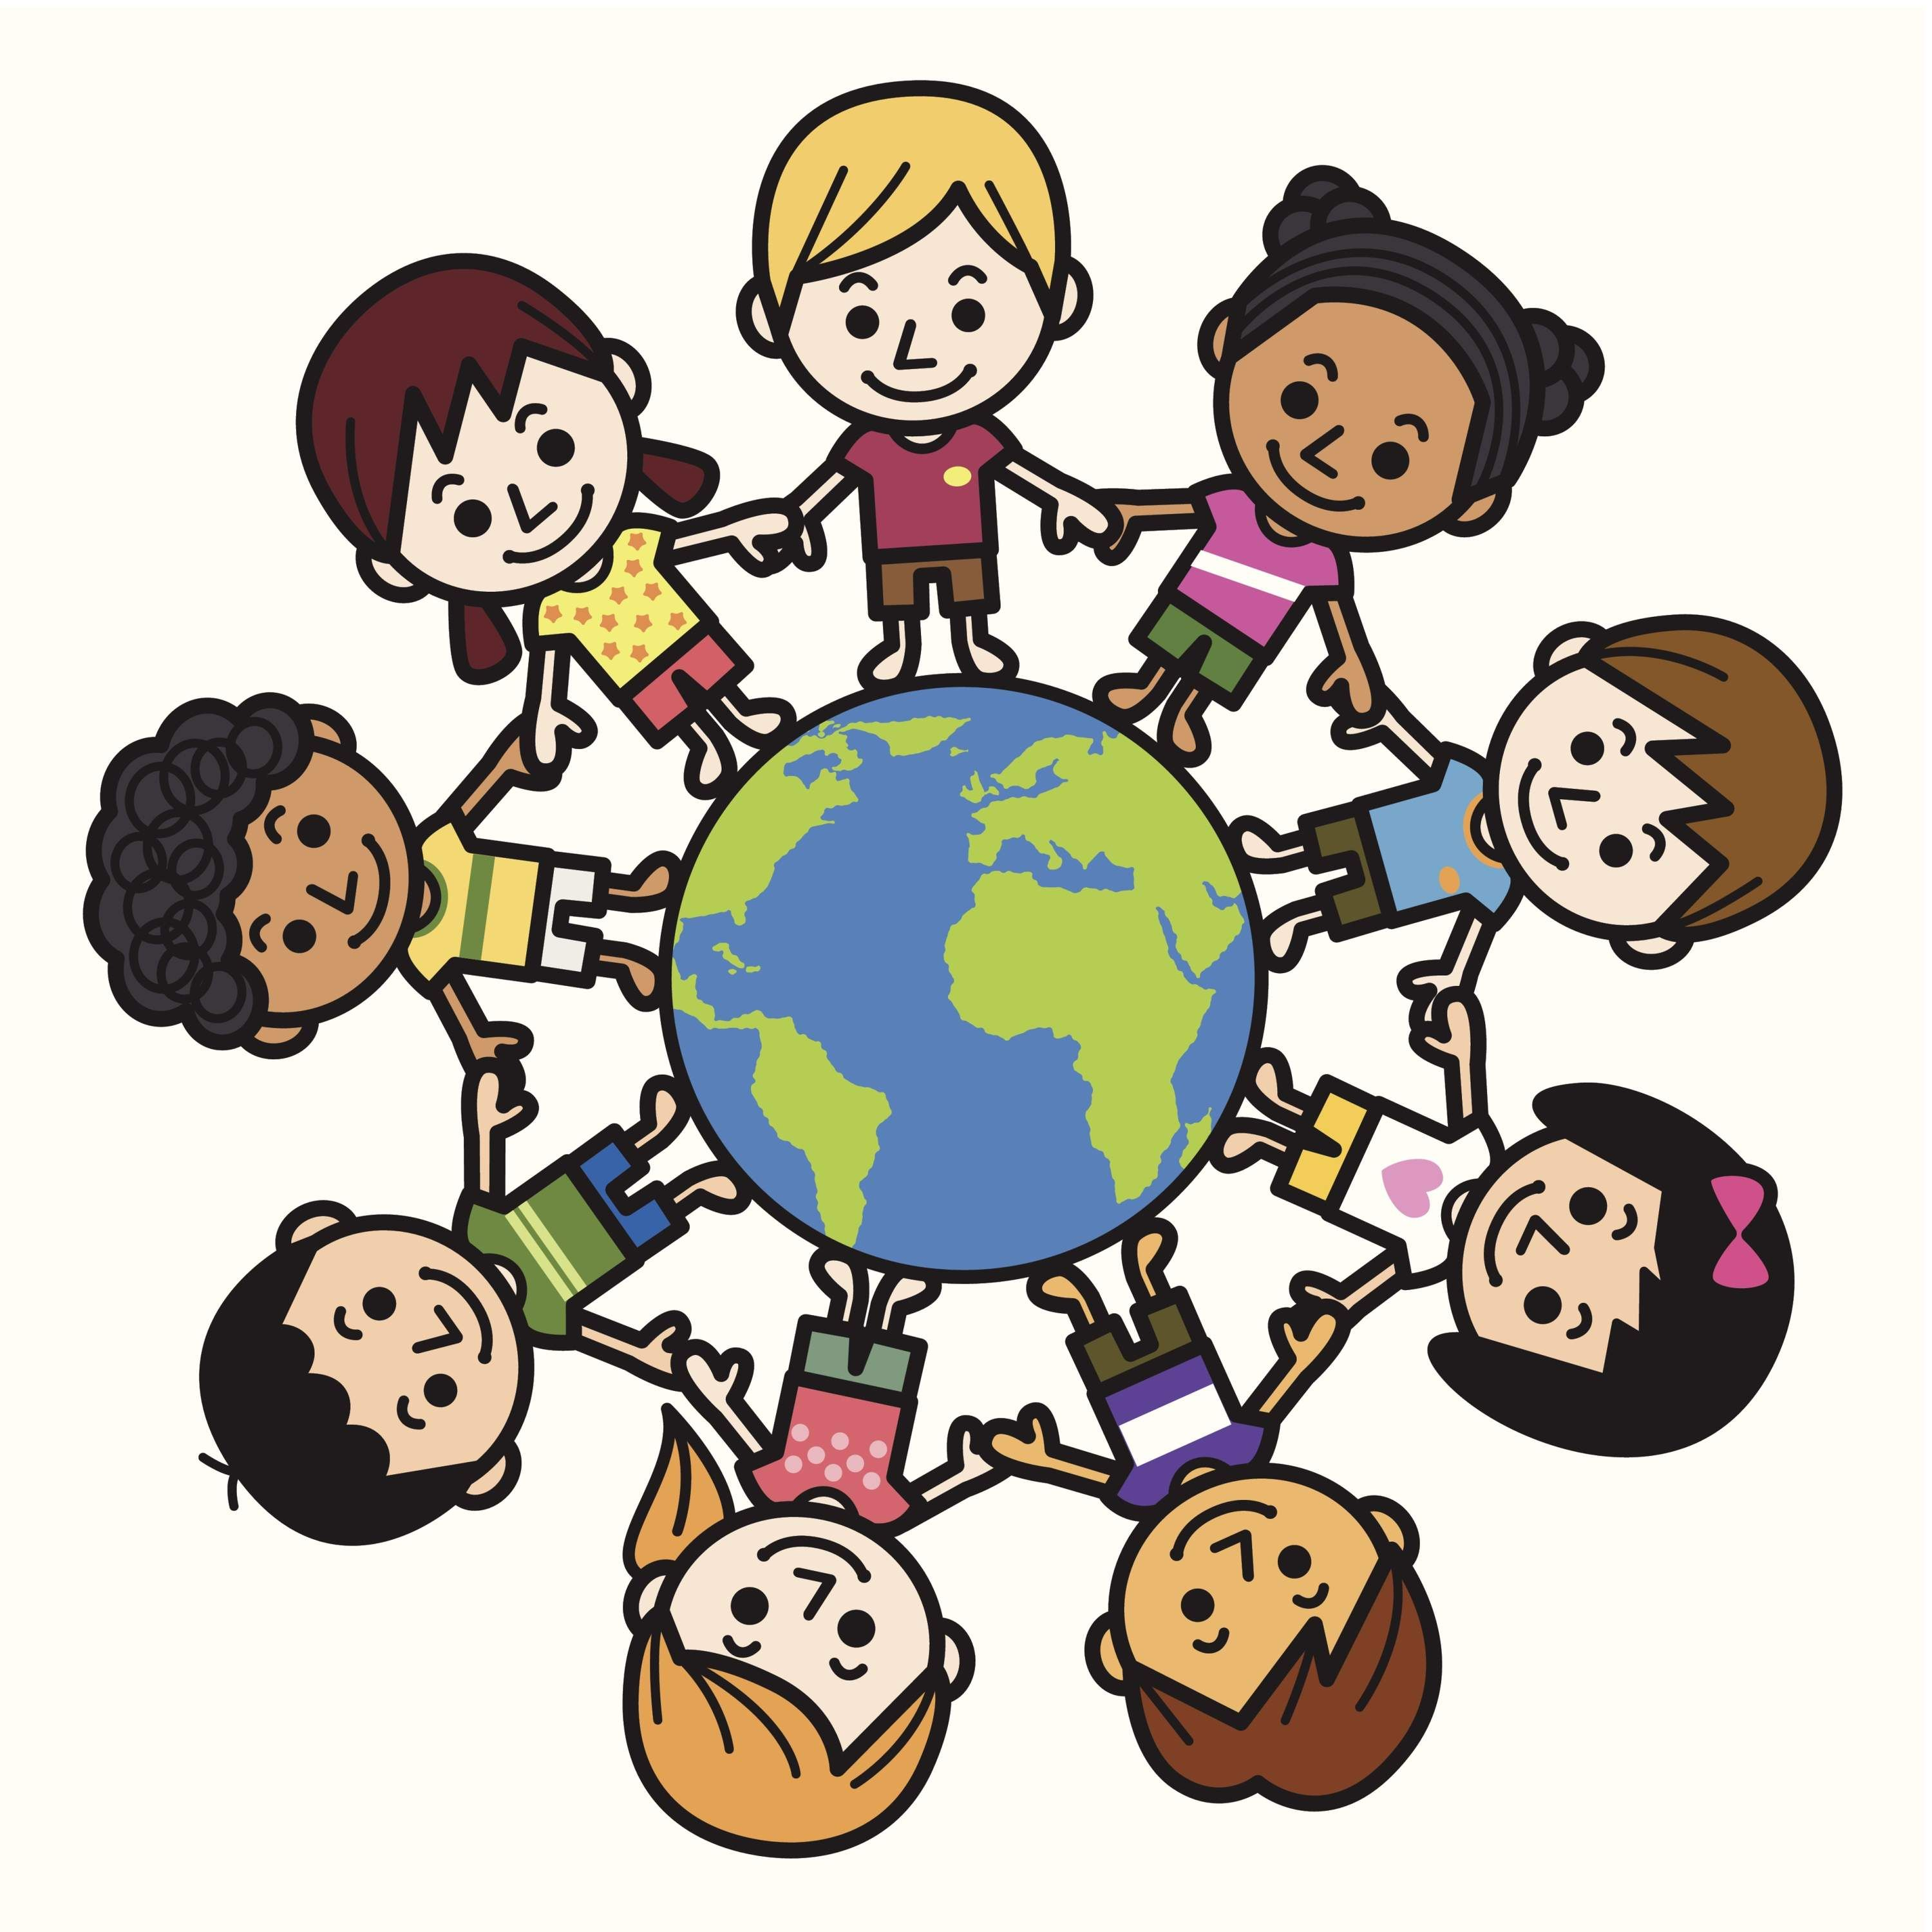 medium resolution of happy smiling multicultural kids around the world clipart free